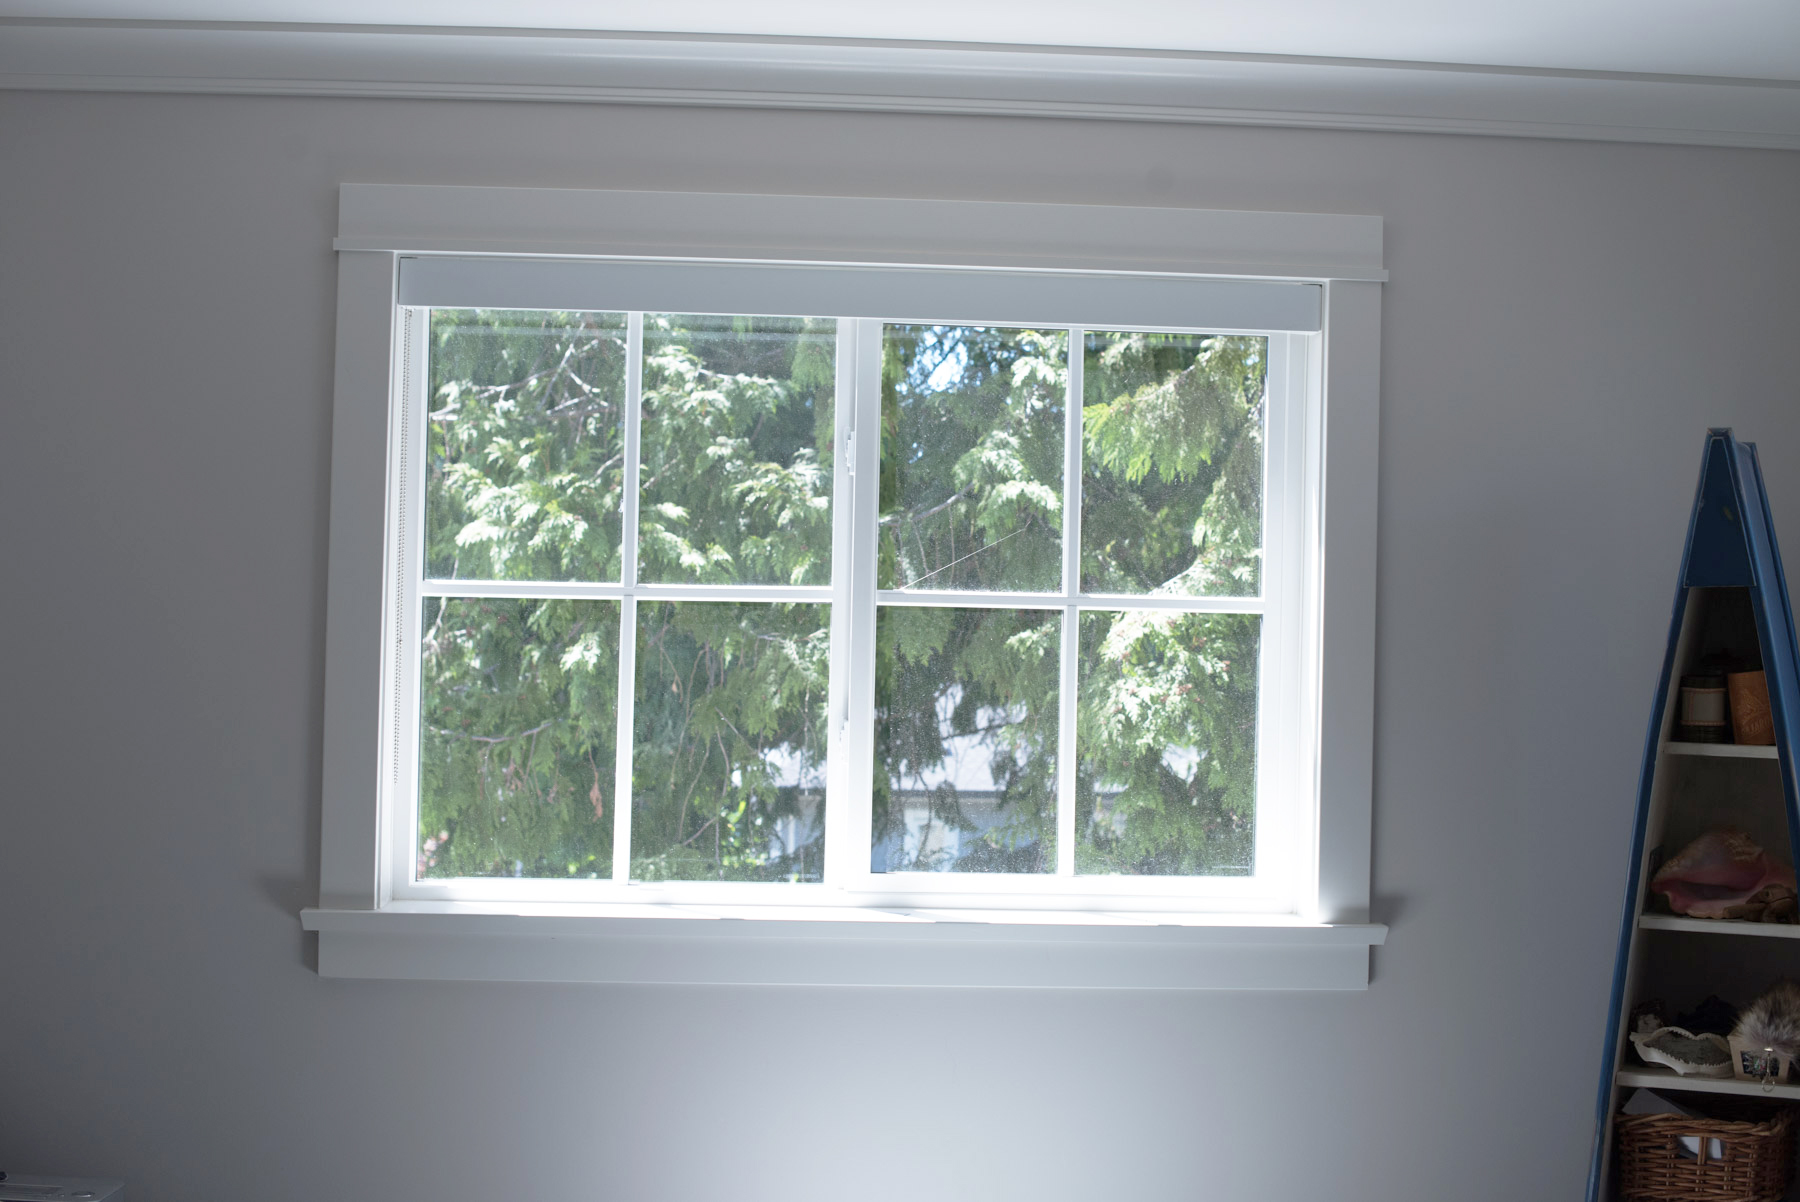 Sliding Windows - West Coast Windows